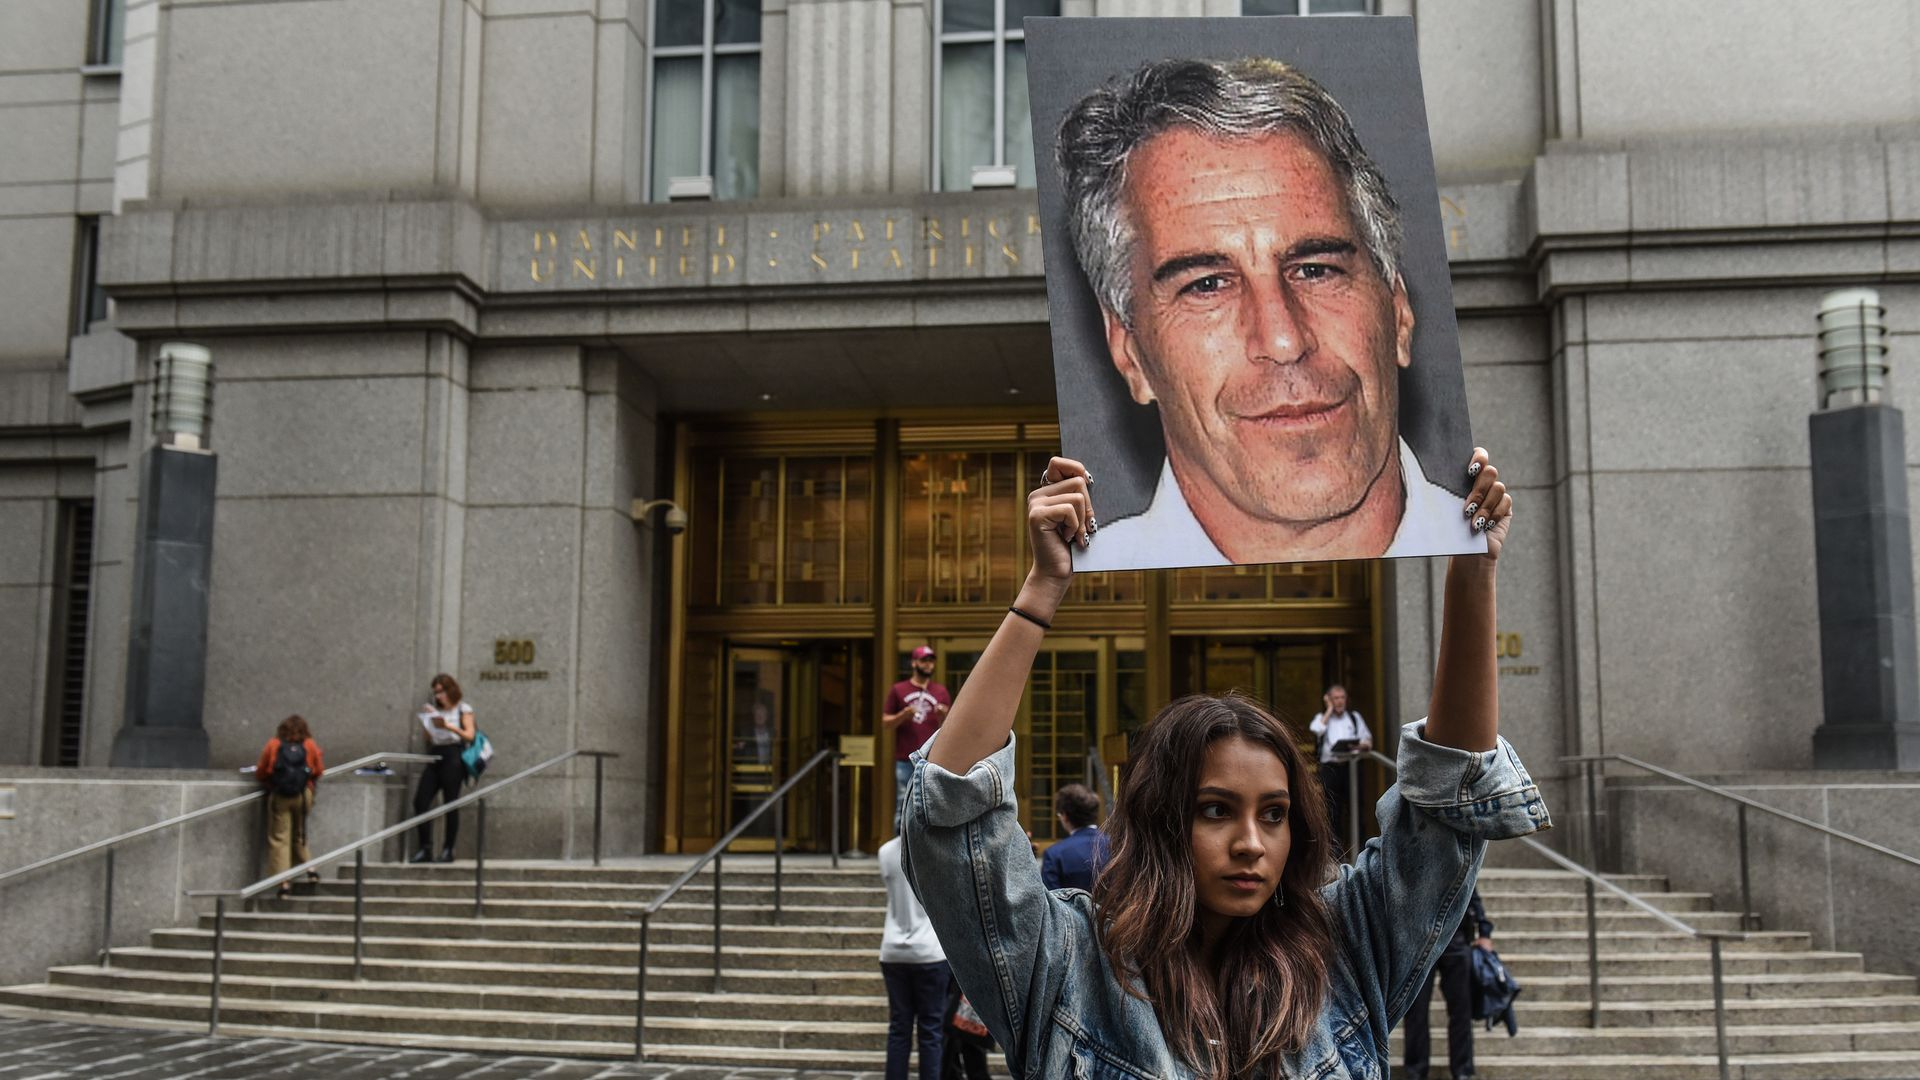 A girl holding up a poster of Epstein's face.